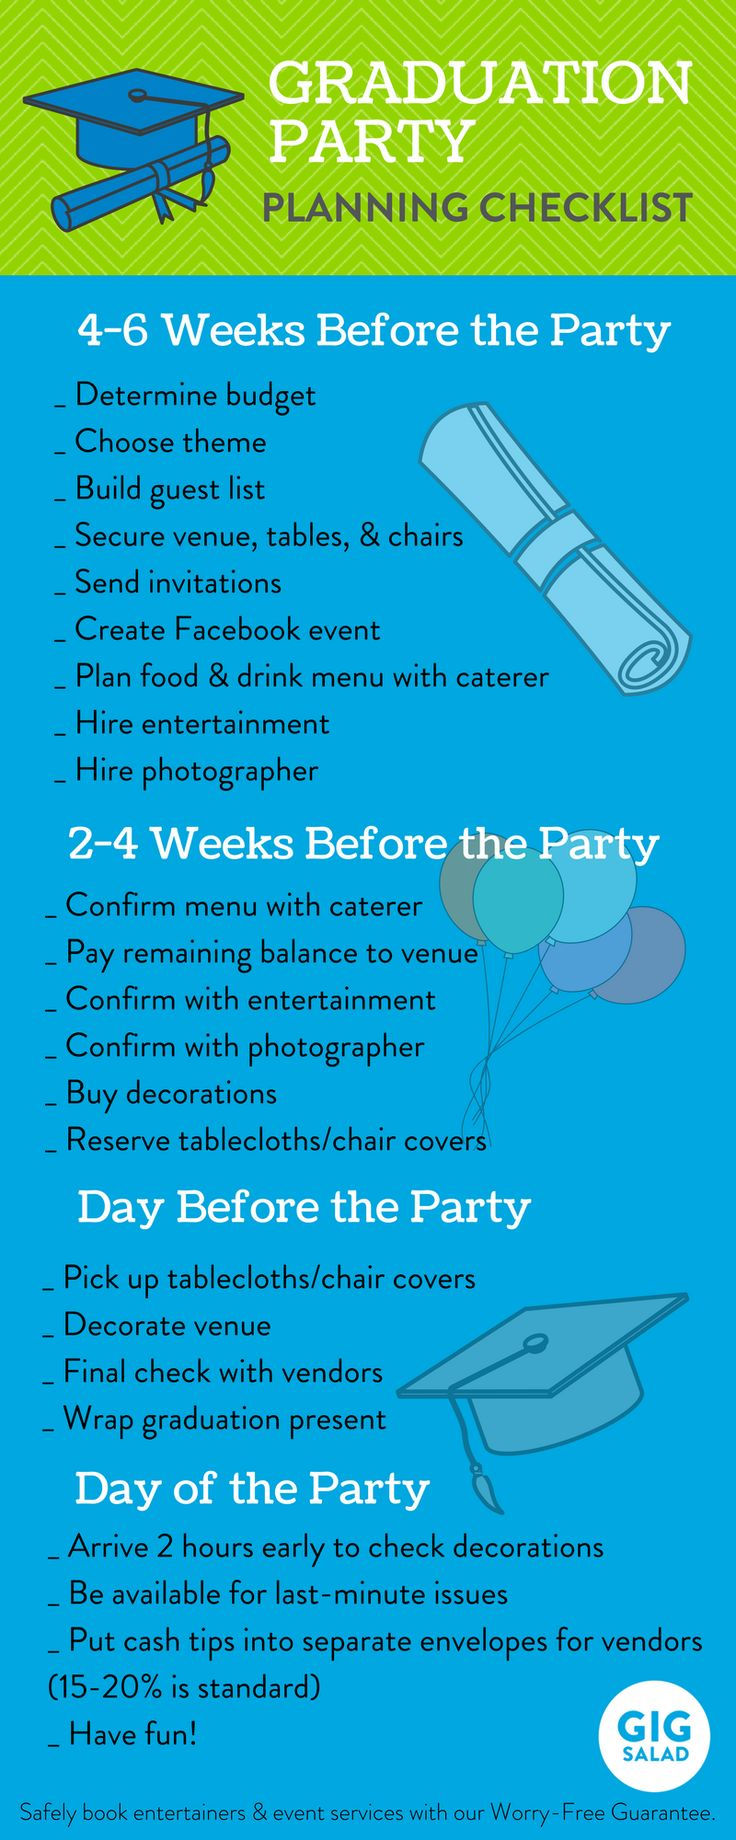 Planning a party for your favorite grad? This graduation party checklist is perfect!